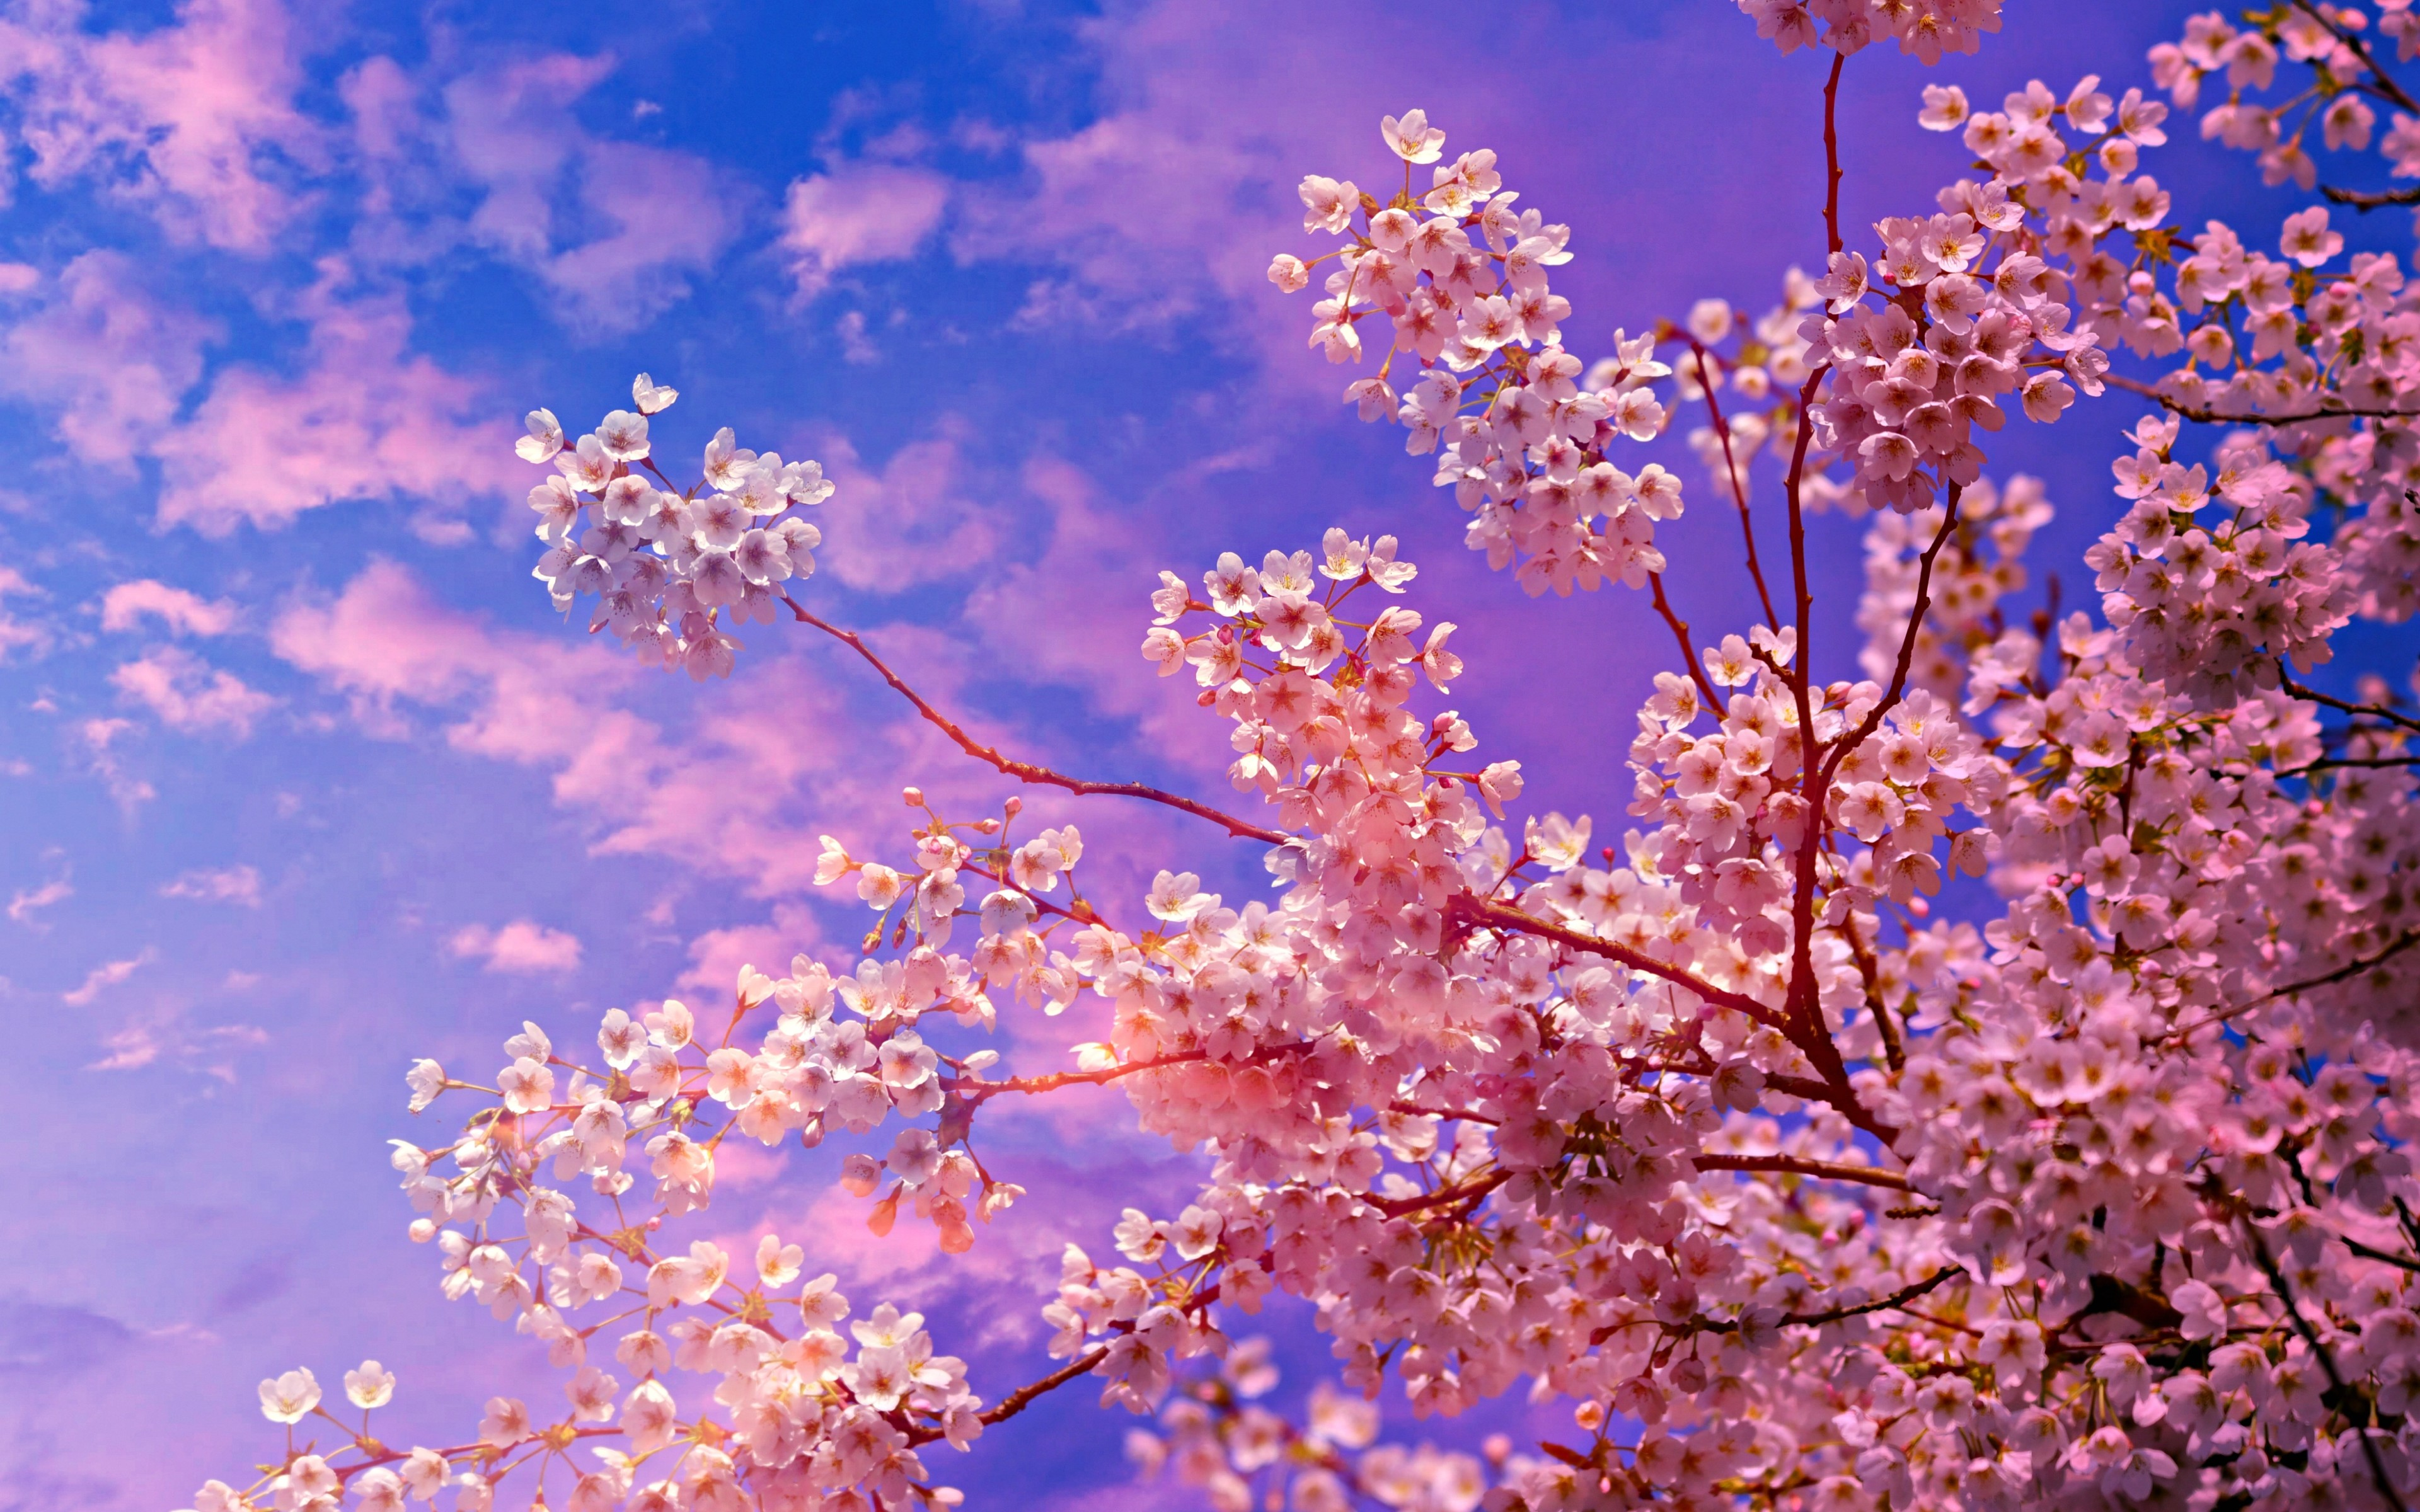 Cherry Blossom Tree Background Hd , HD Wallpaper & Backgrounds